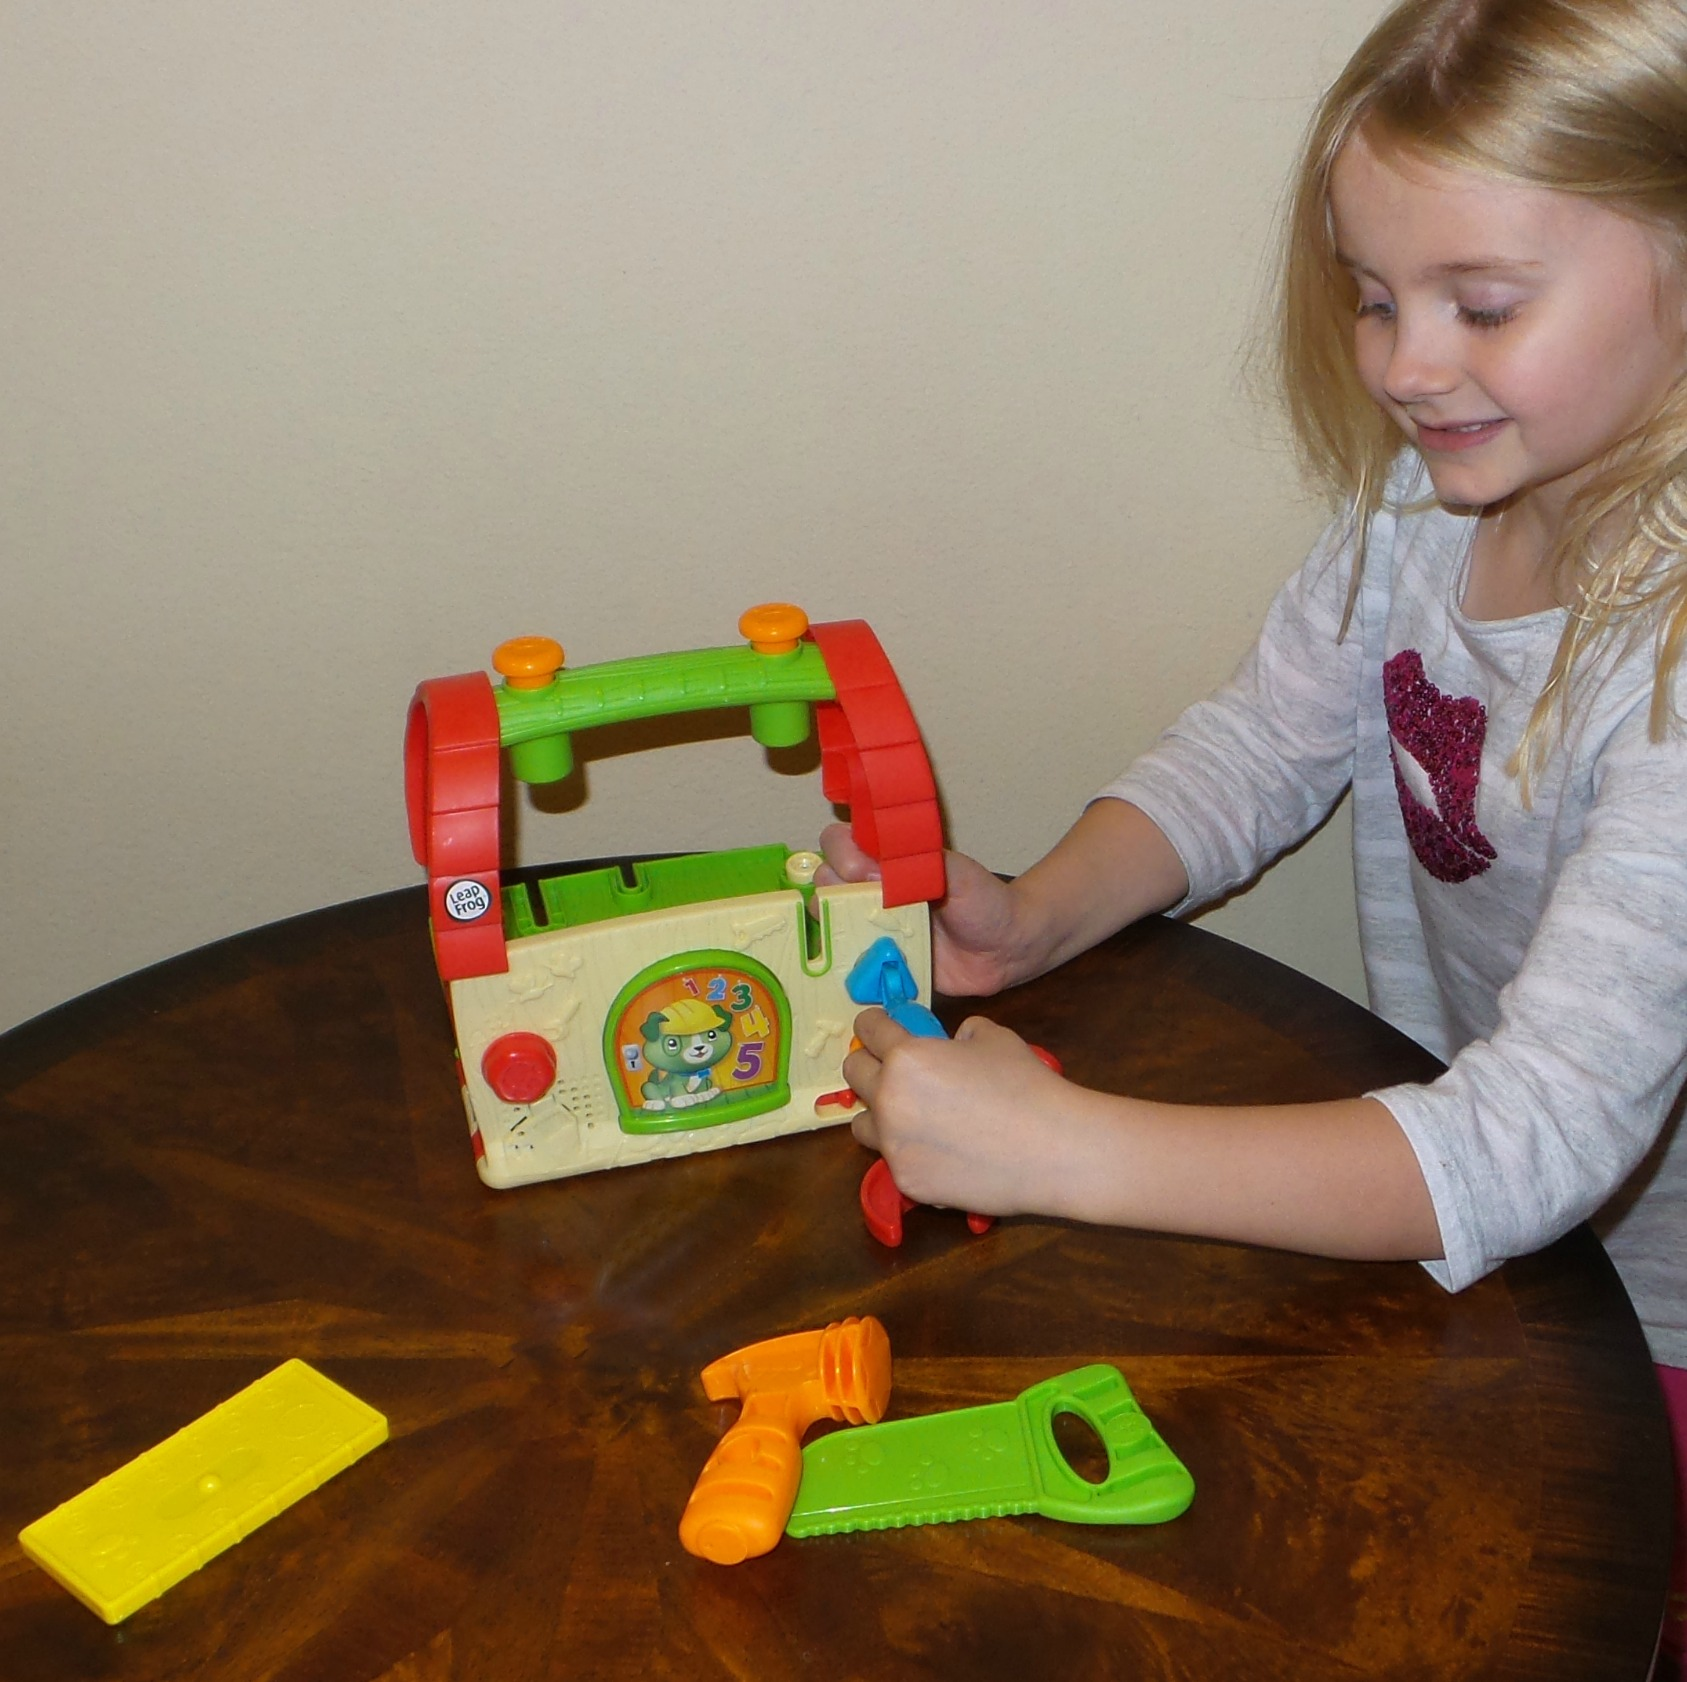 leapfrog scouts build and discover tool set